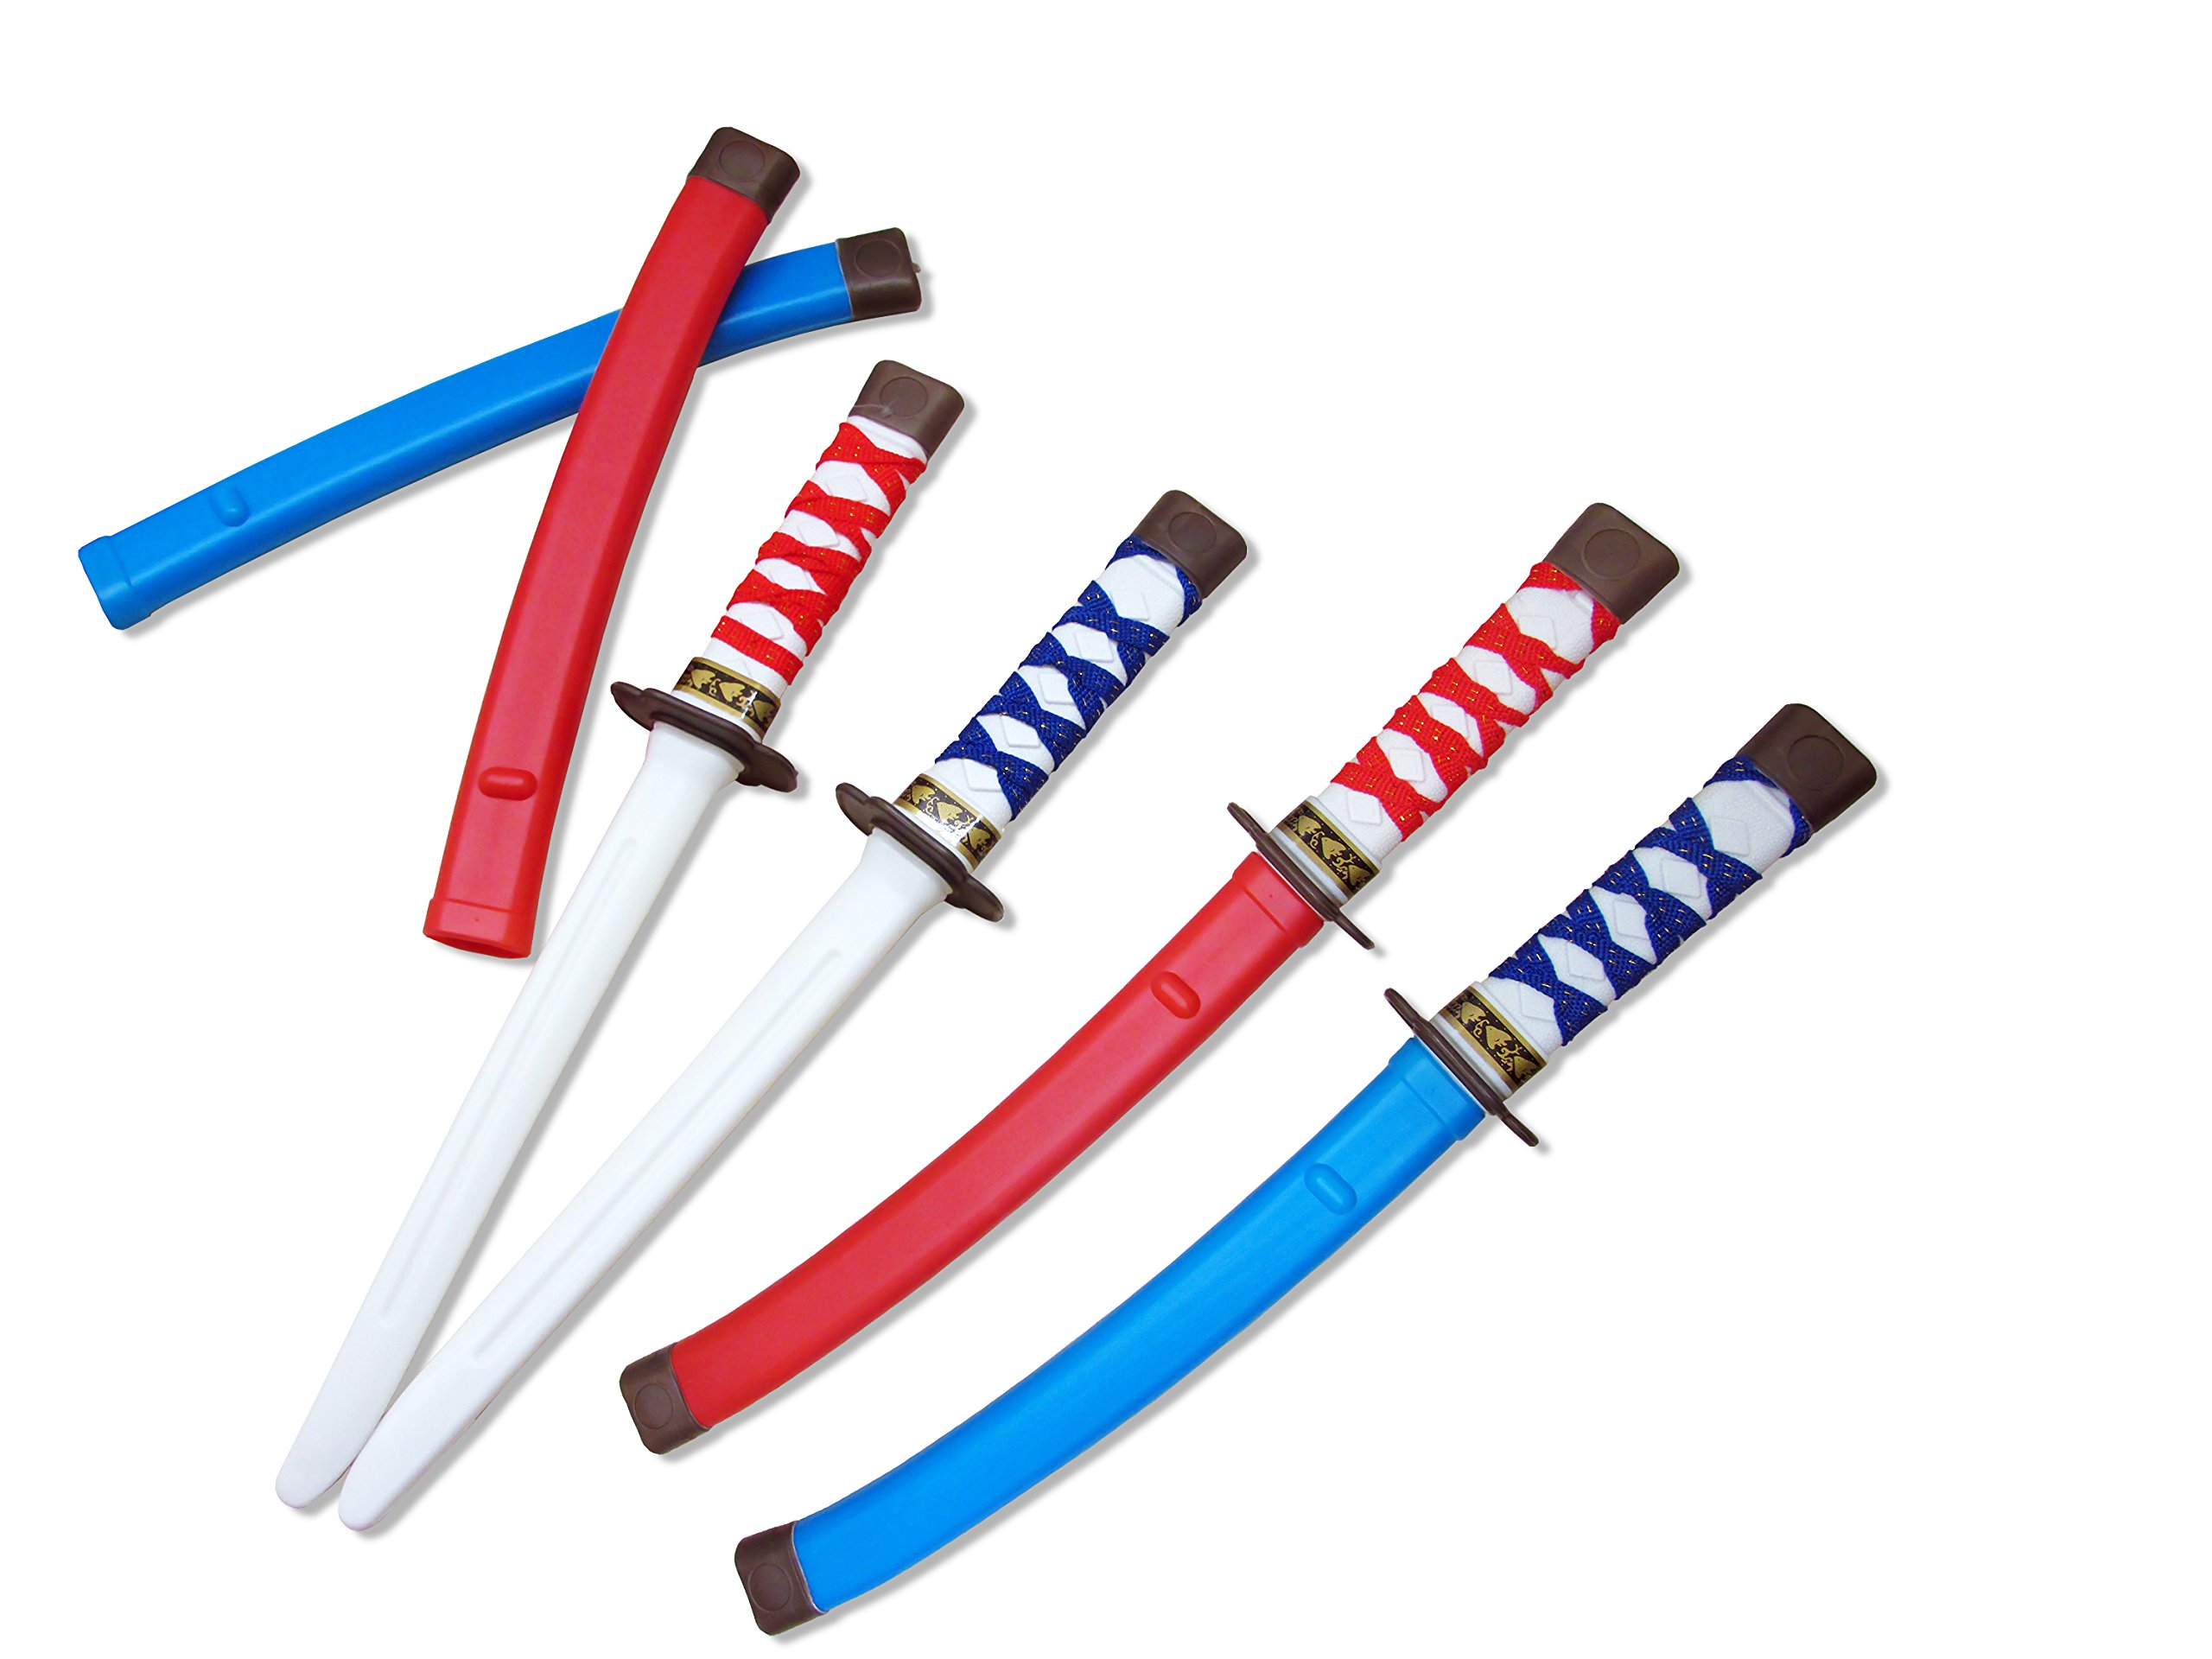 Dazzling Toys Plastic Samurai 17 Inch Swords with Cloth Wrapped Handles 12 Pack Comes in Red and Blue Color